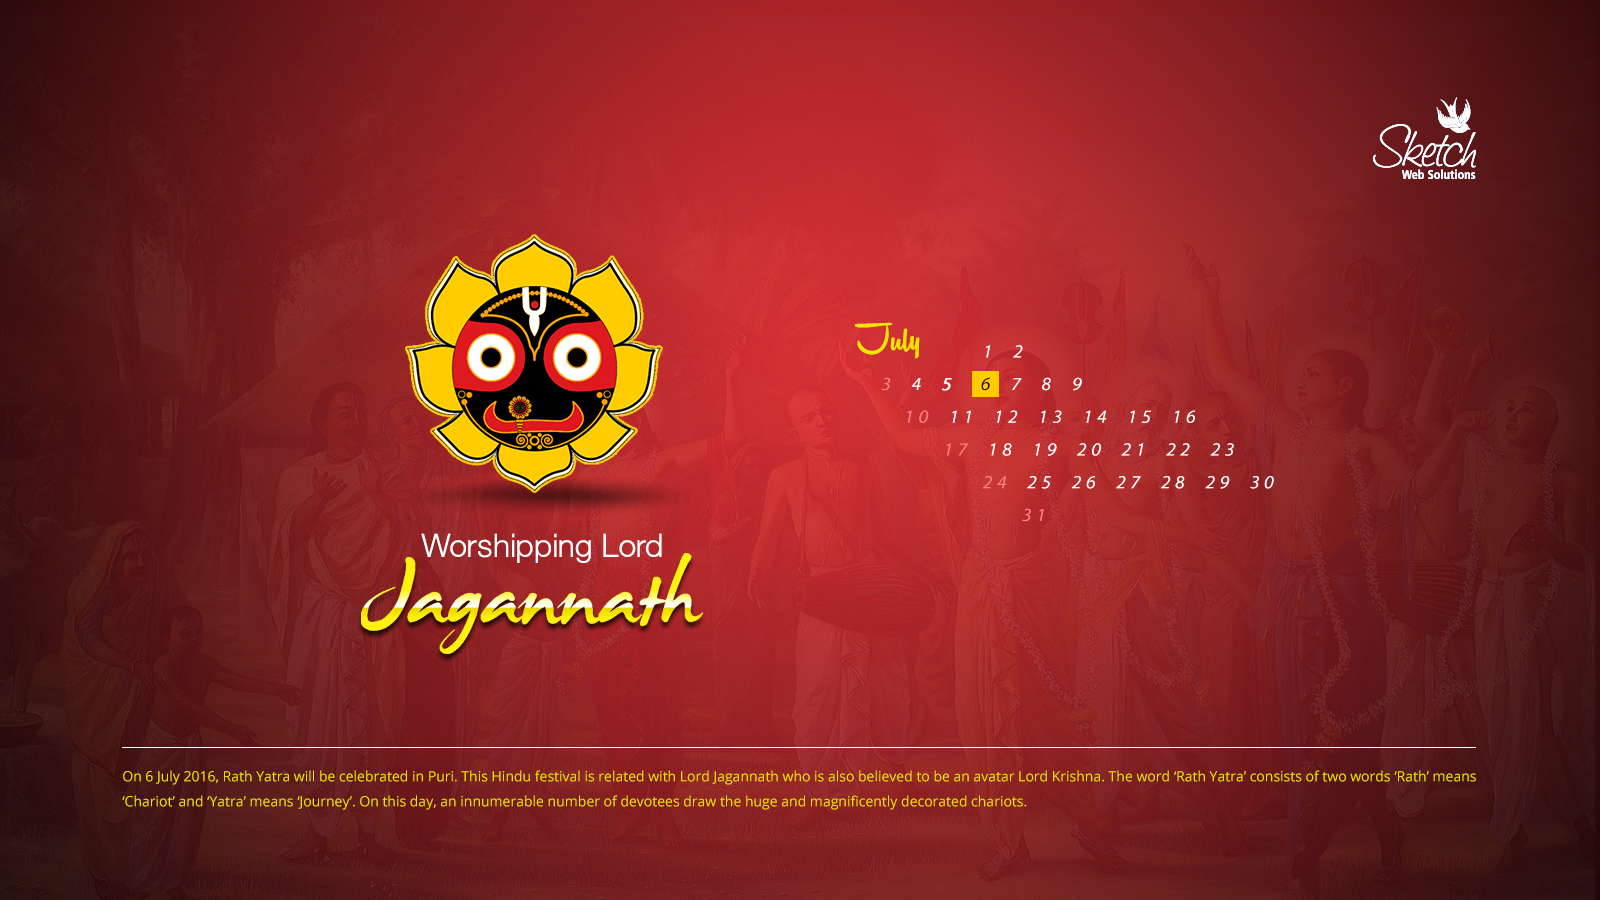 Worshipping Lord Jagannath